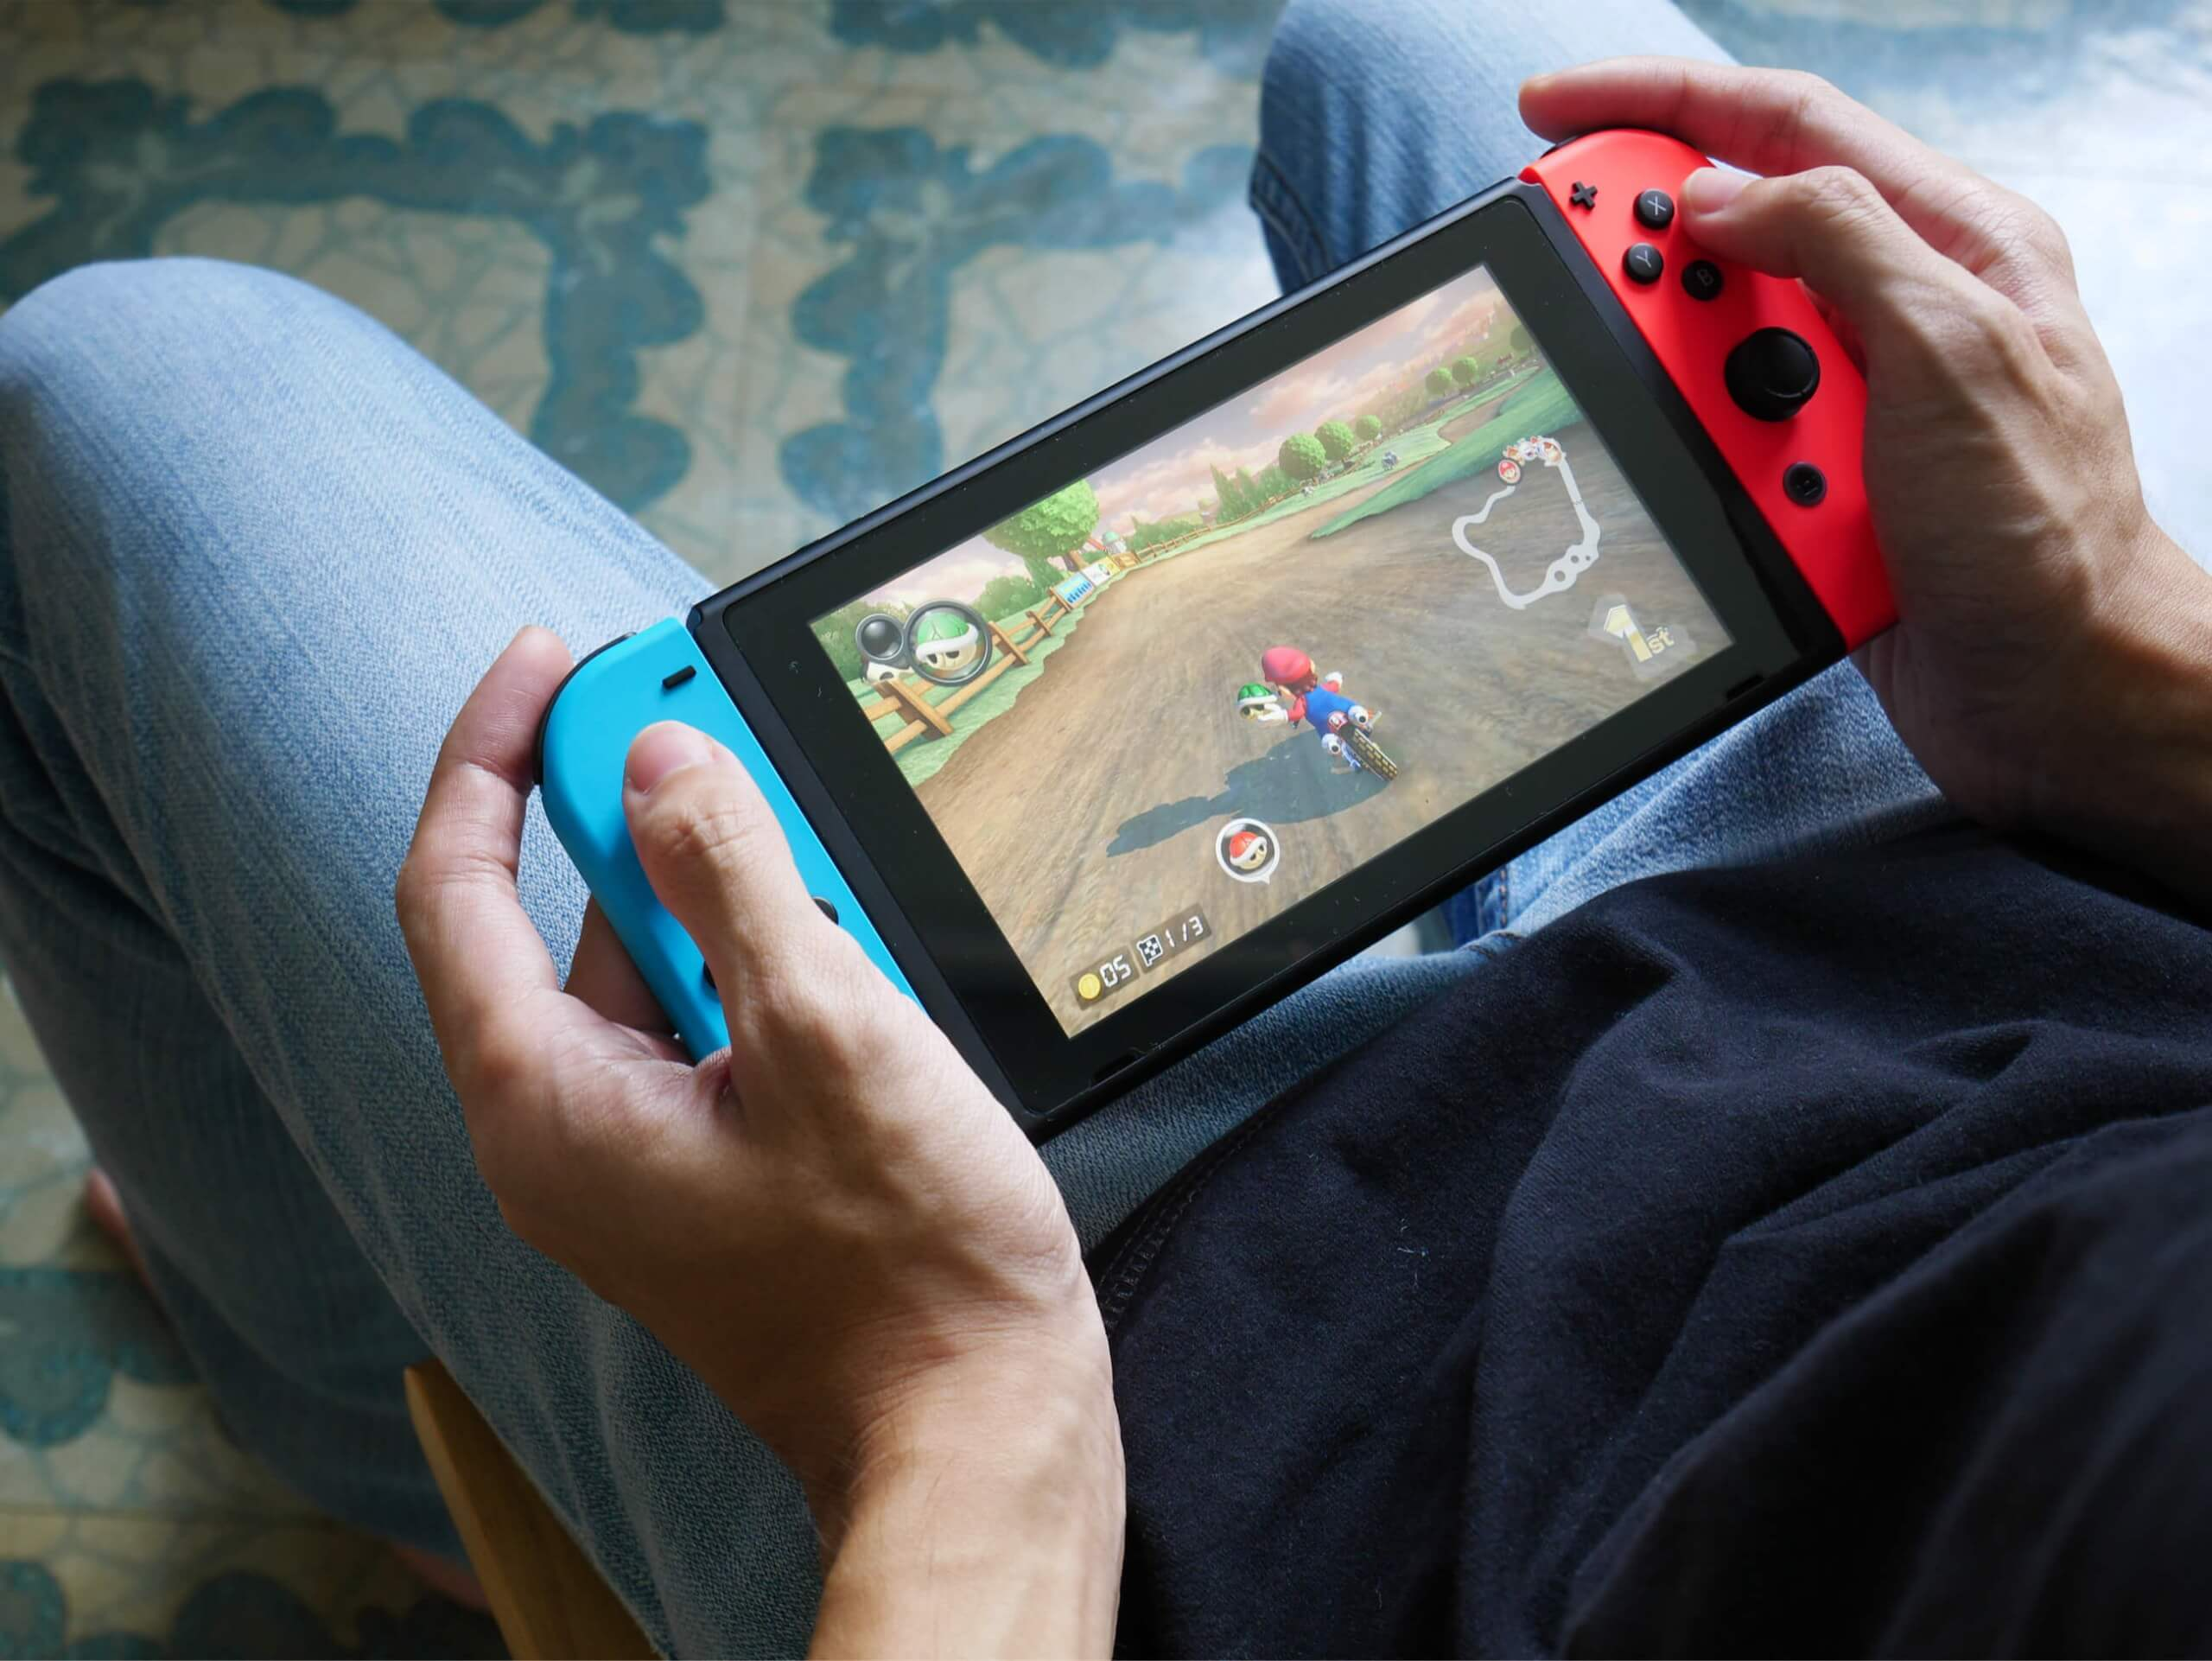 Next-gen Switch isn't happening, sources at Nintendo say